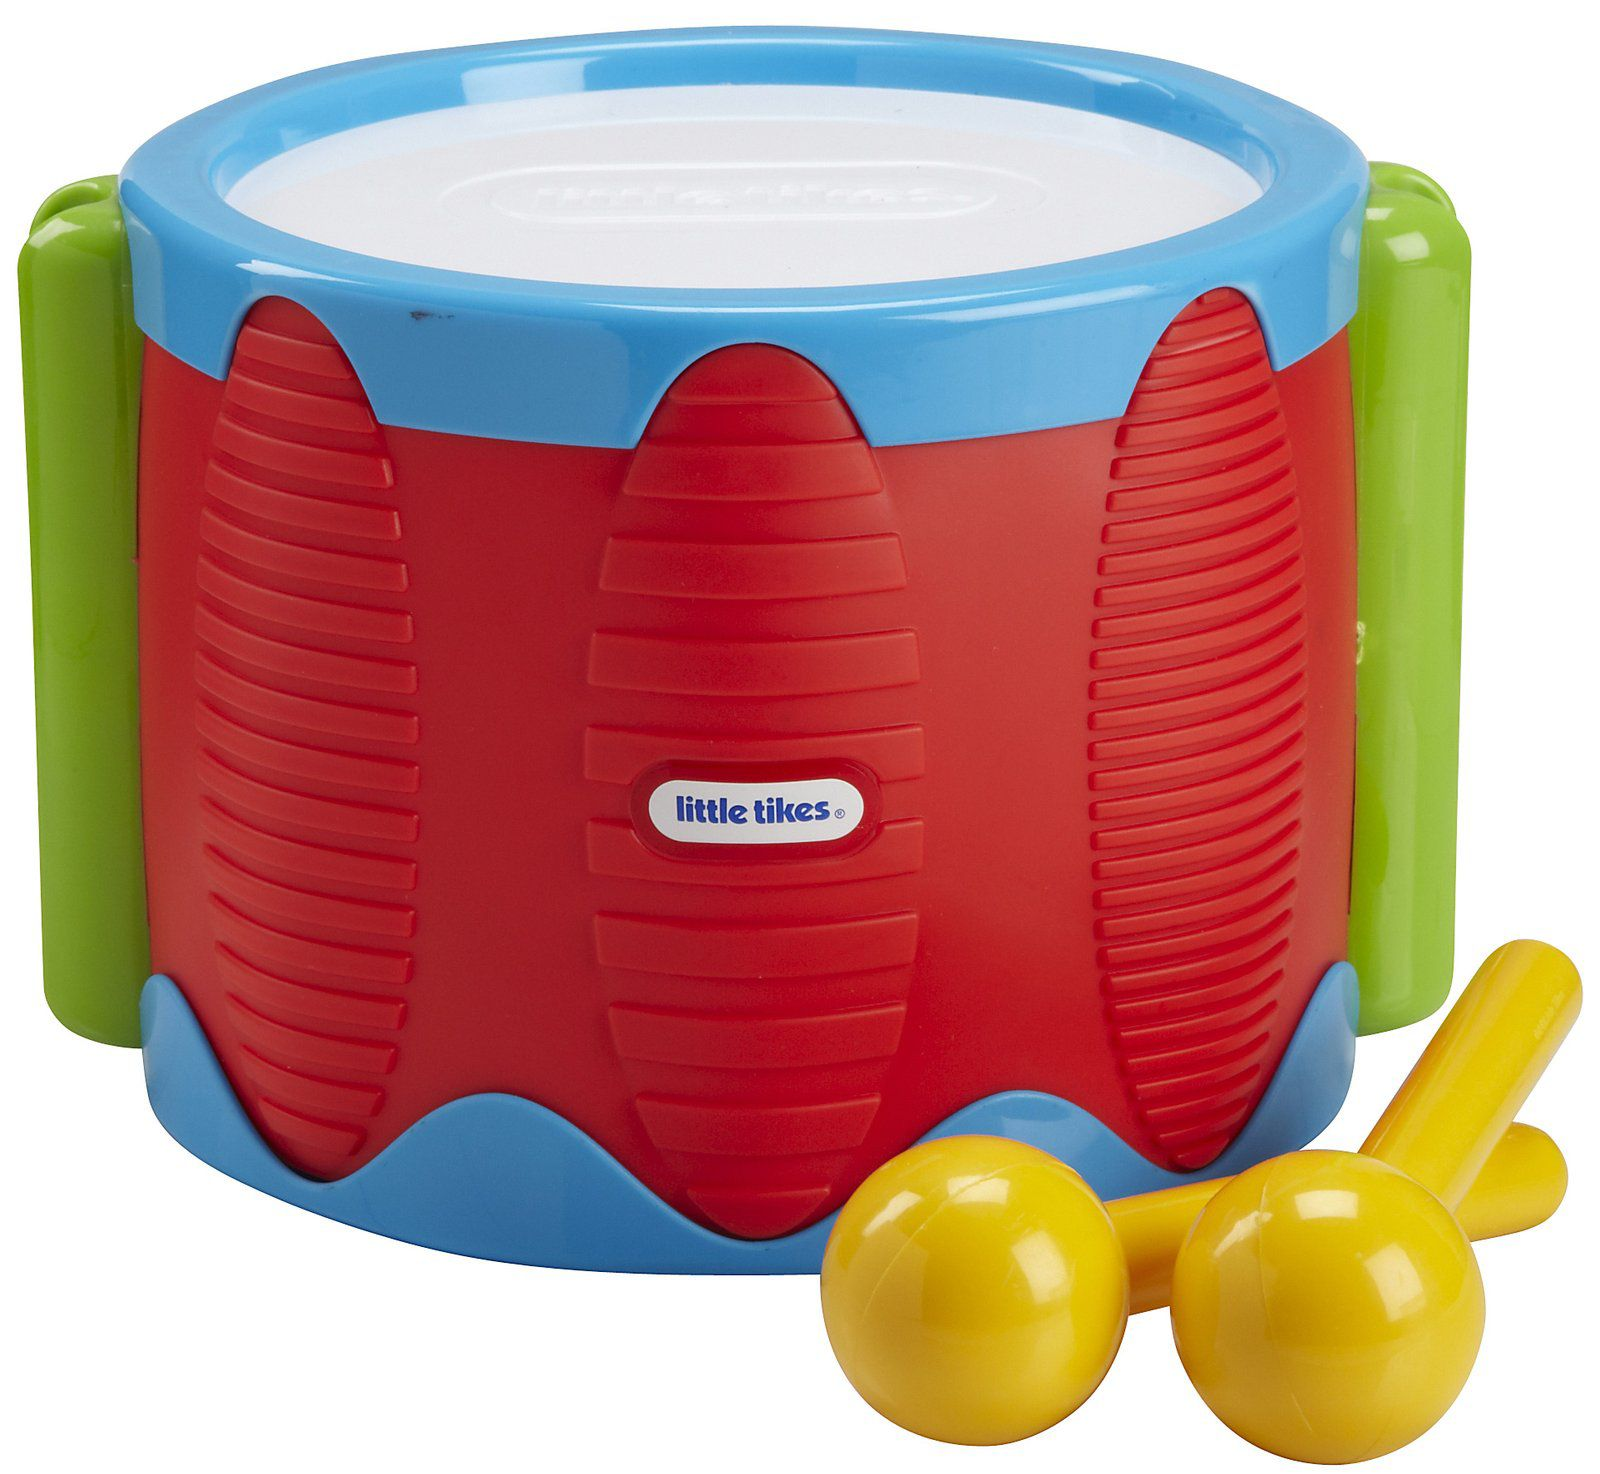 Little Tikes Little Tikes Tap A Tune Drum